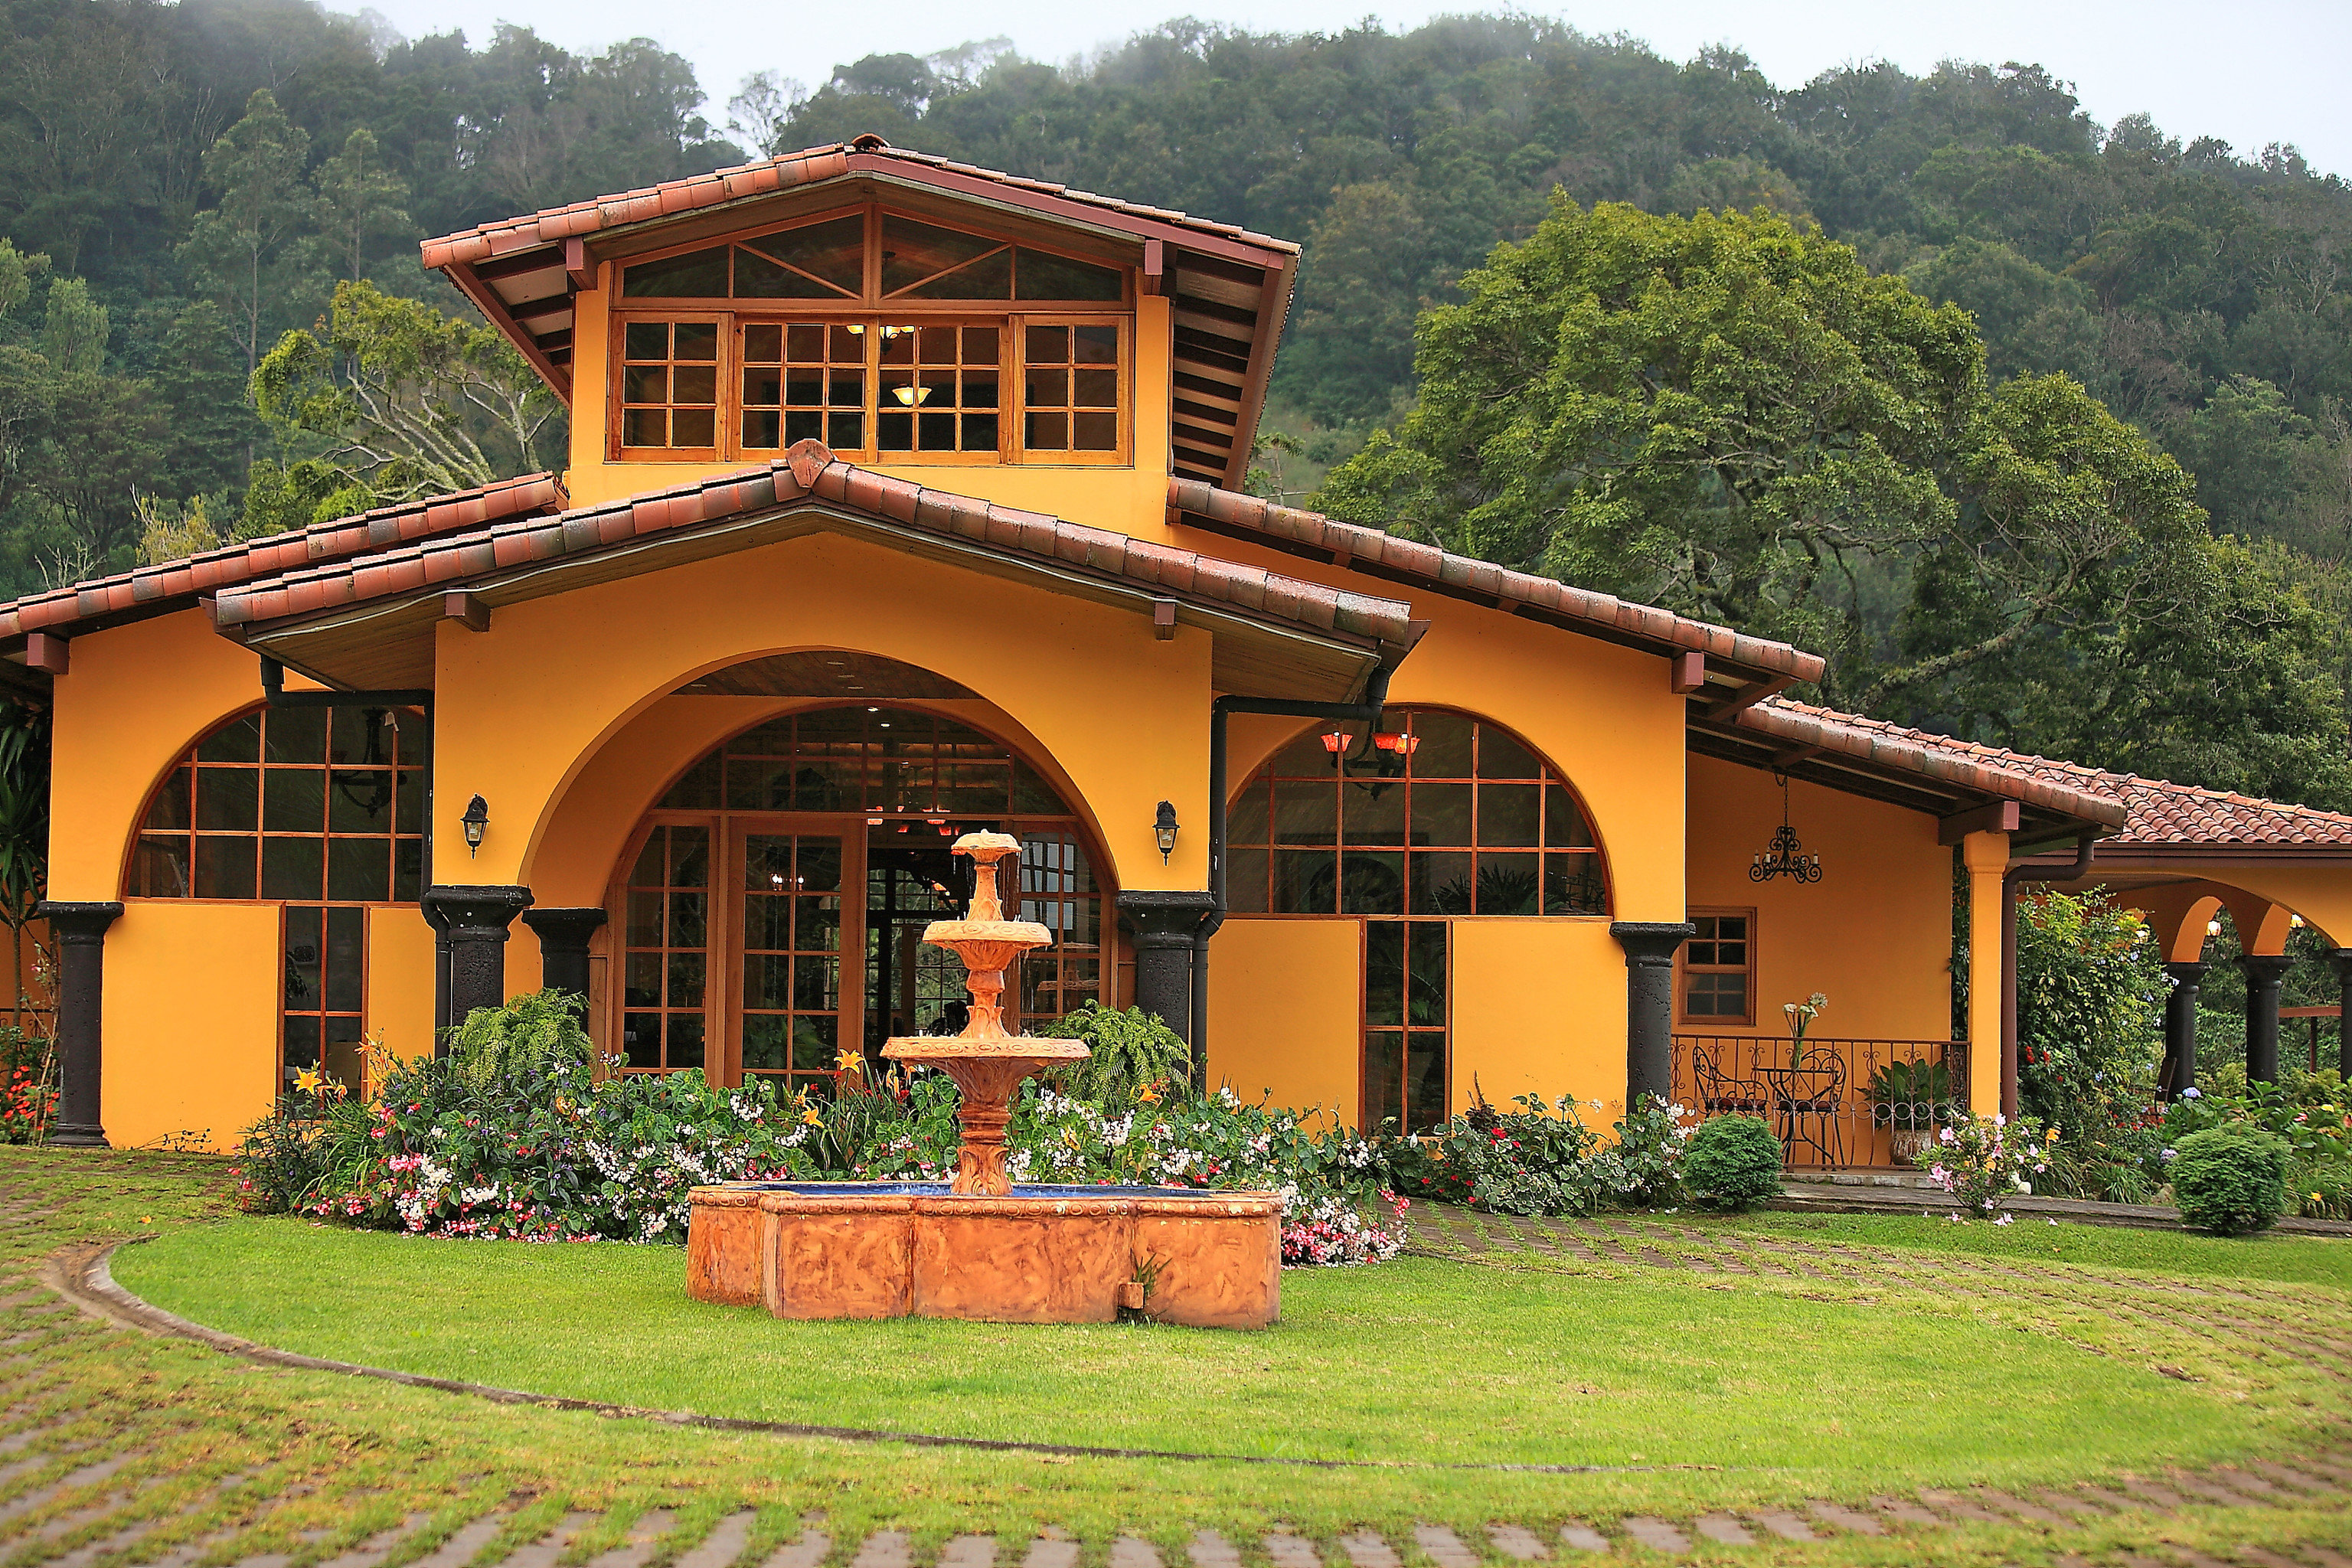 Architecture Boutique Buildings Exterior Grounds Scenic views grass tree building house property home log cabin residential area rural area cottage yellow farmhouse Villa mansion Resort hacienda Garden lush